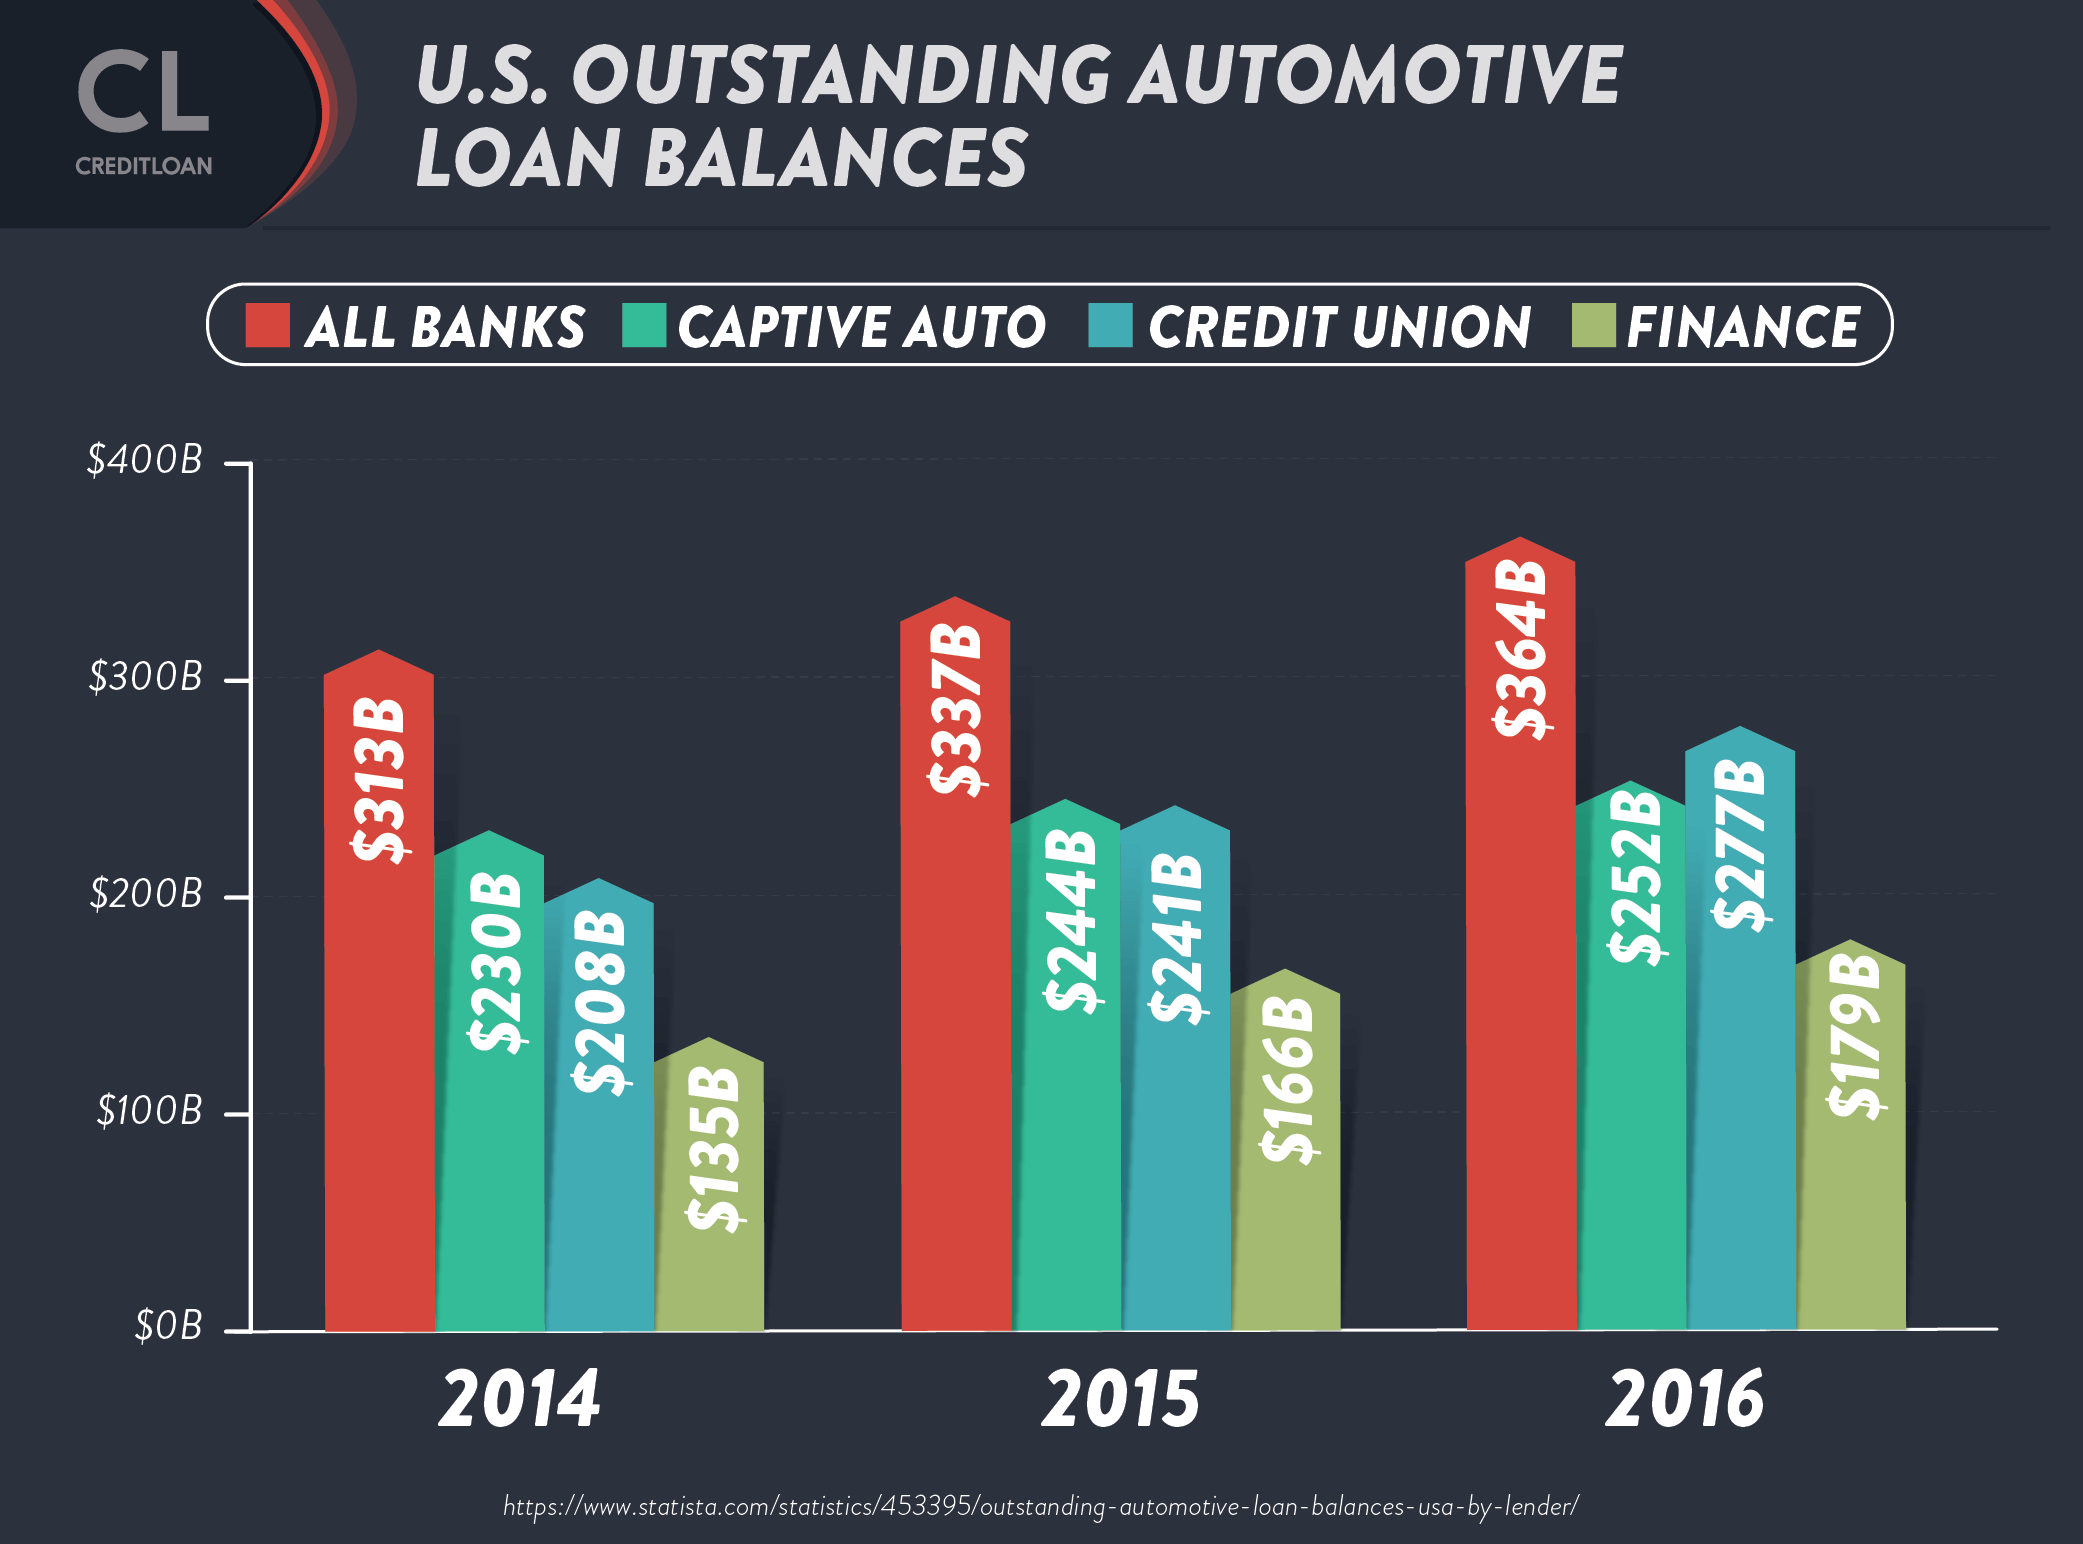 U.S. outstanding automotive loan balances